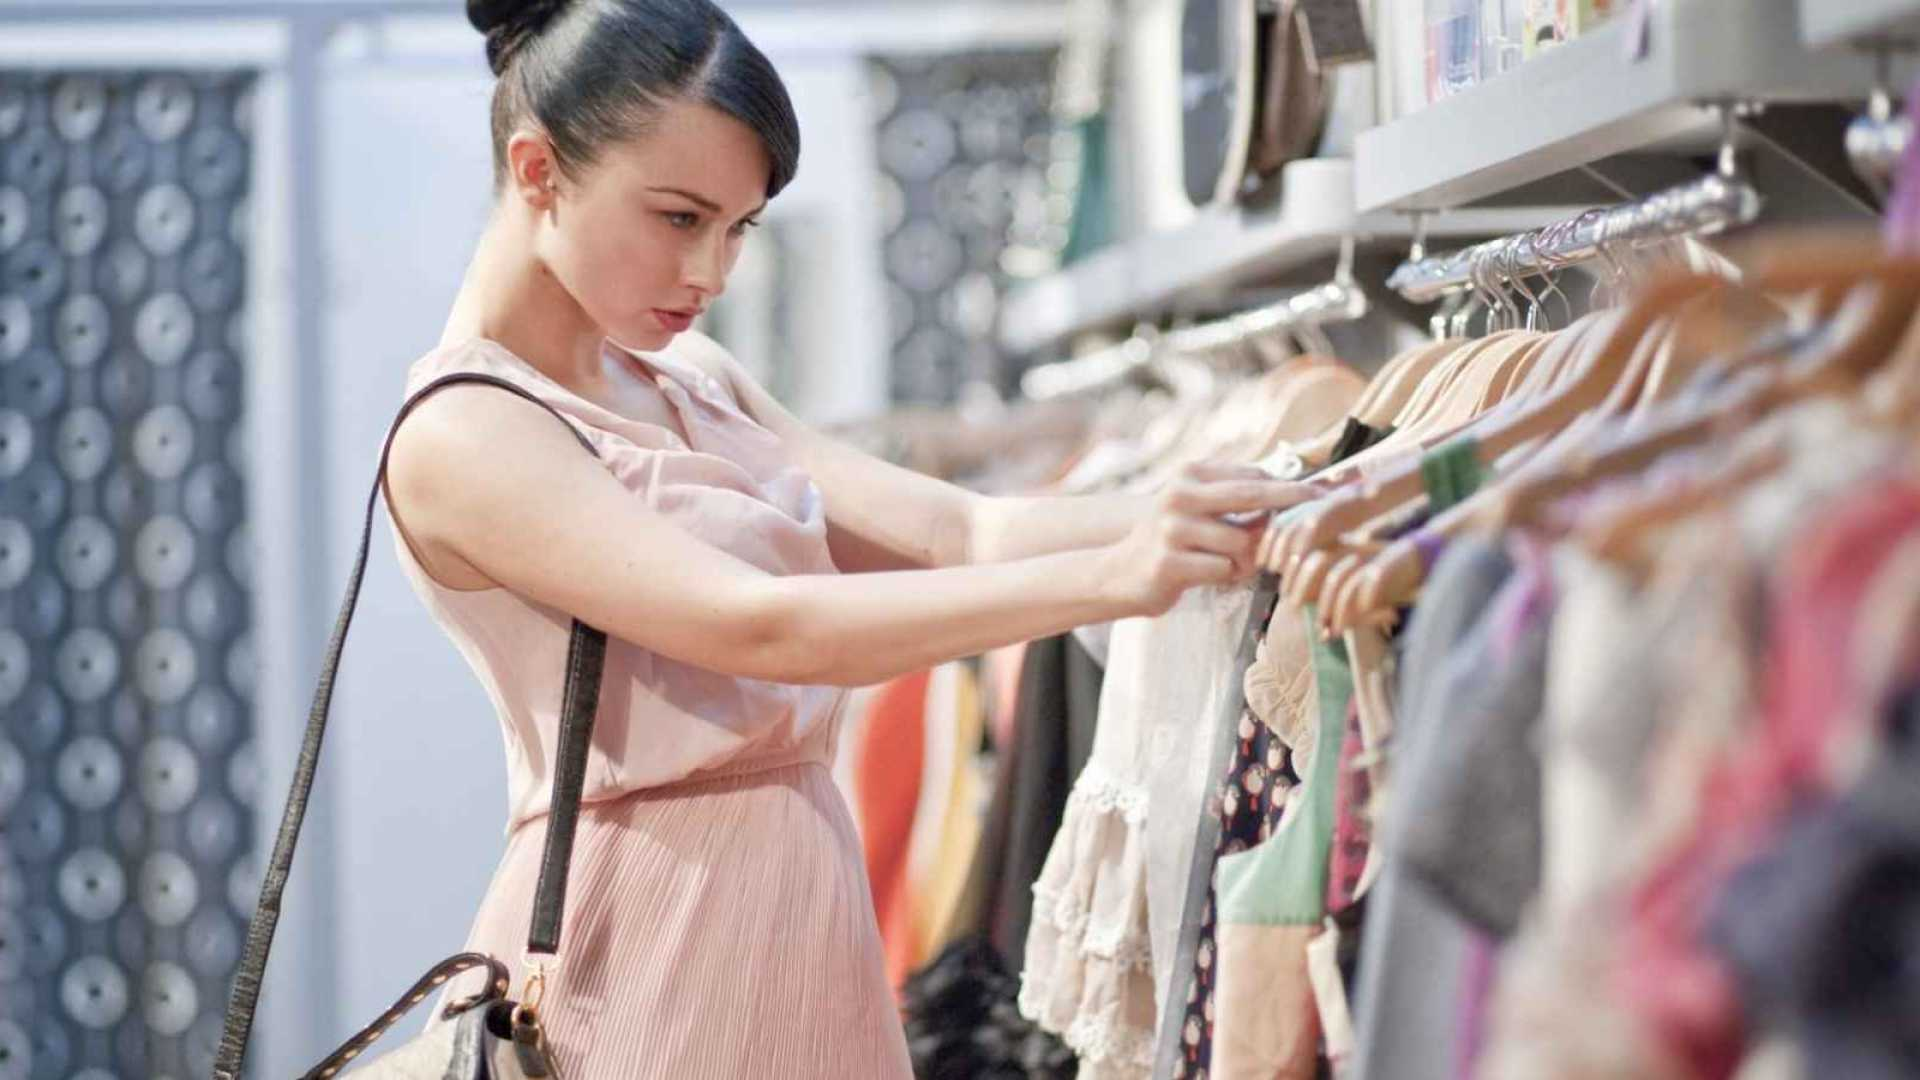 How This Startup Plans to Disrupt Social Commerce and Empower Fashion Entrepreneurs